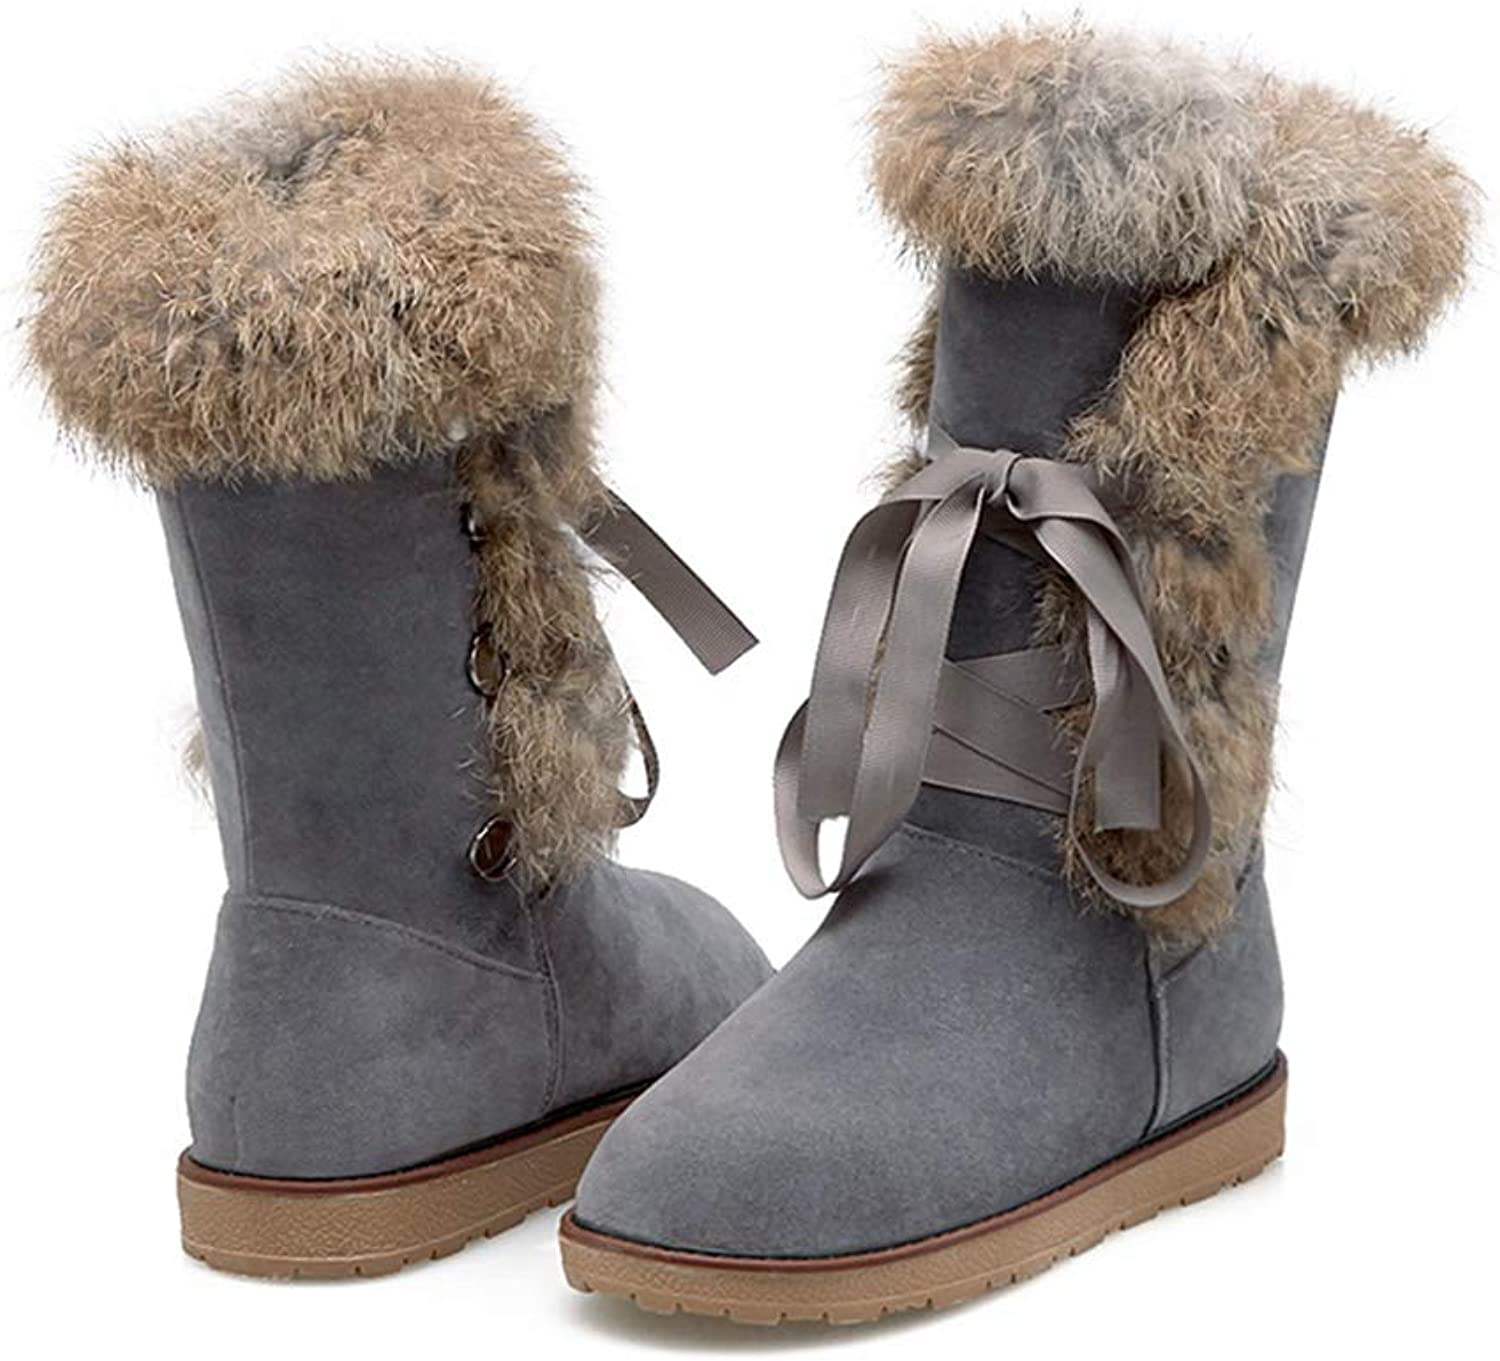 SENERY Women Winter Mid Calf Boots,Low Flat with Lace-up Ladies Plush Warm Concise Casual Round Toe Snow Booties